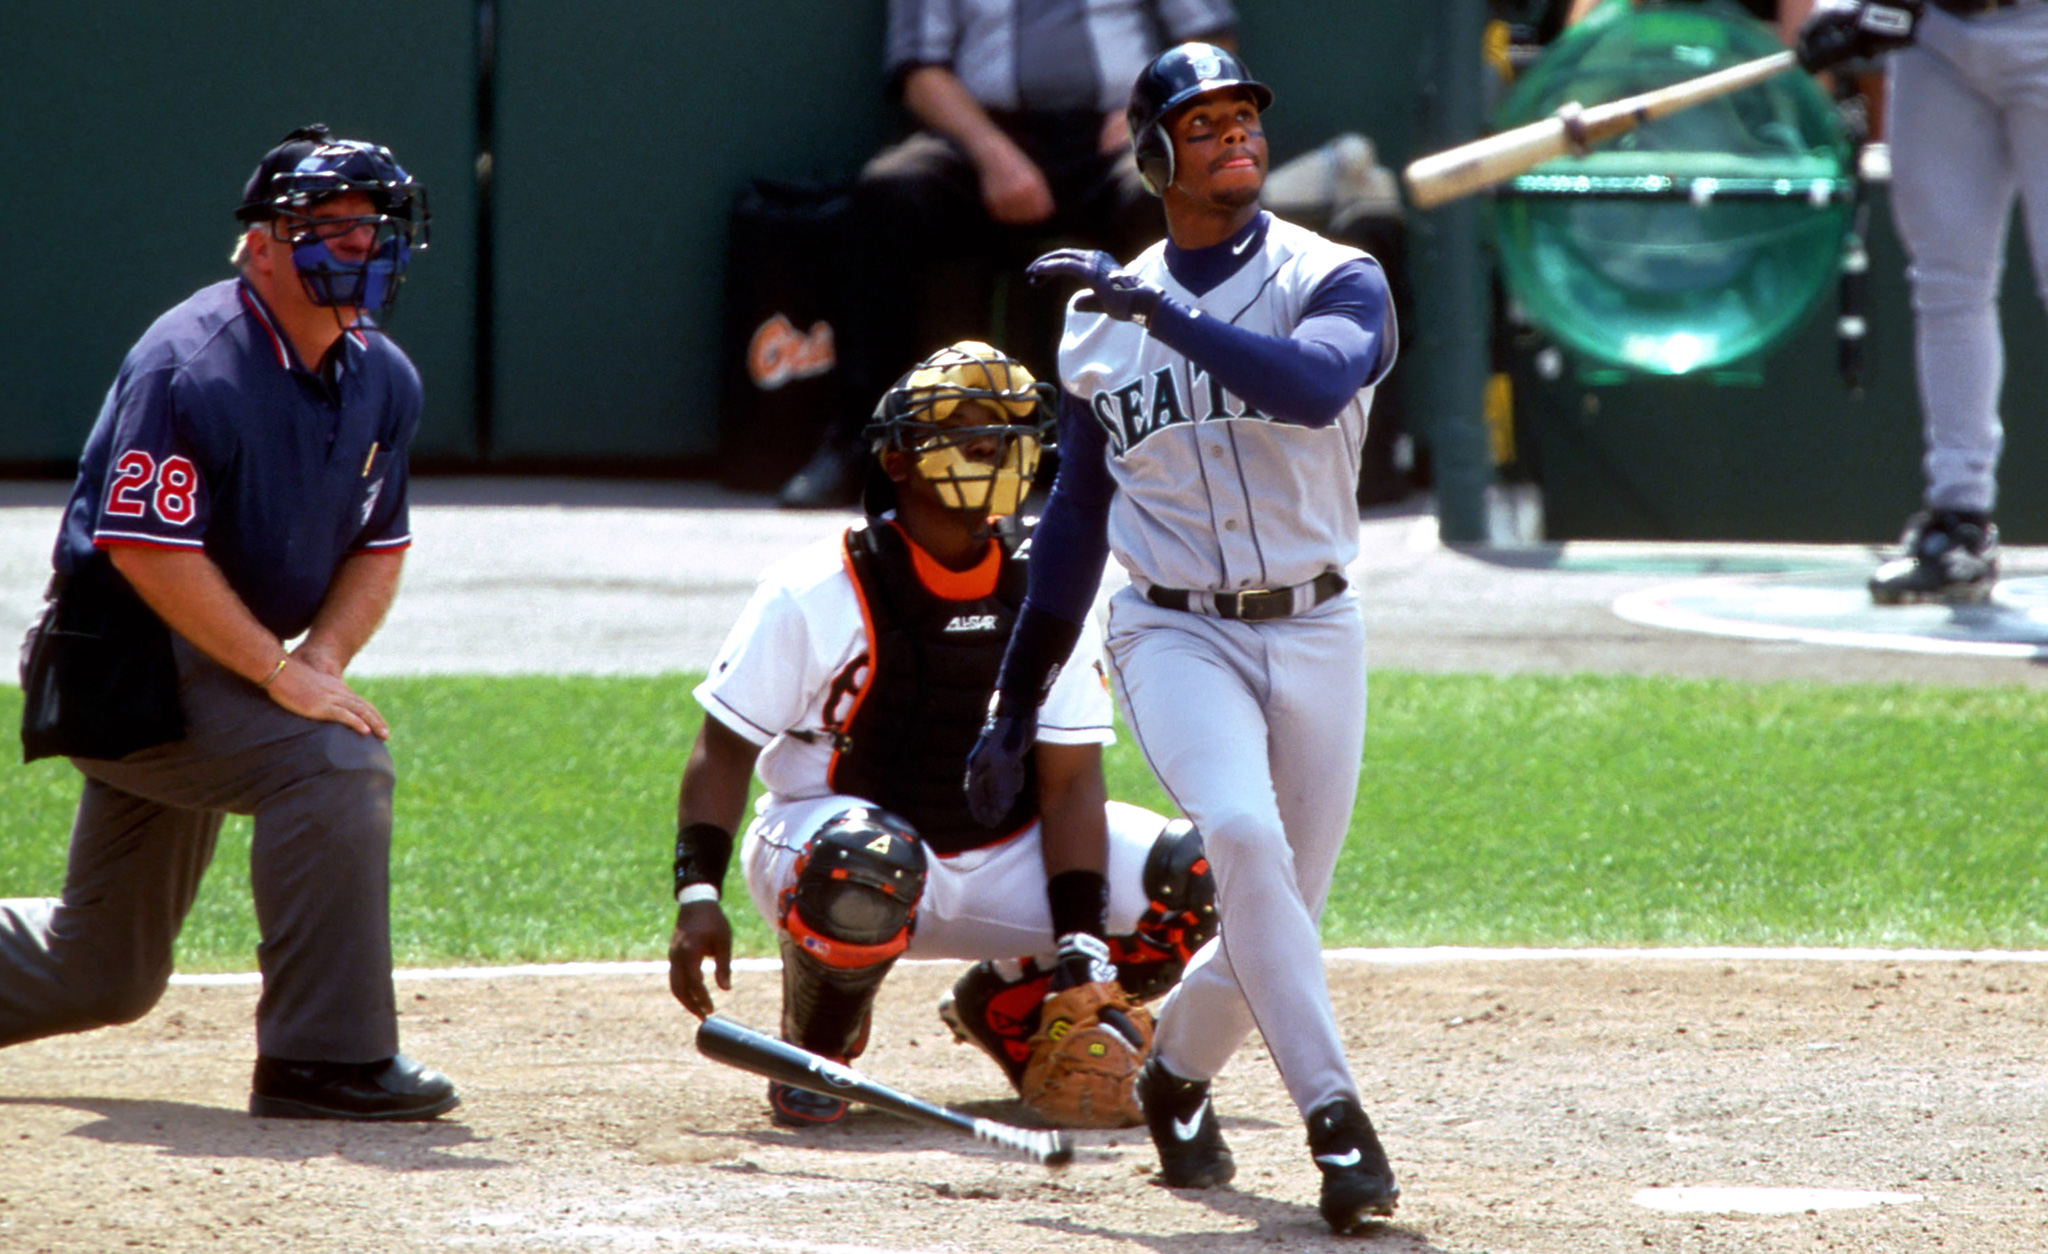 Best Swing Ken Griffey Jr Best Tools In Mlb History Espn